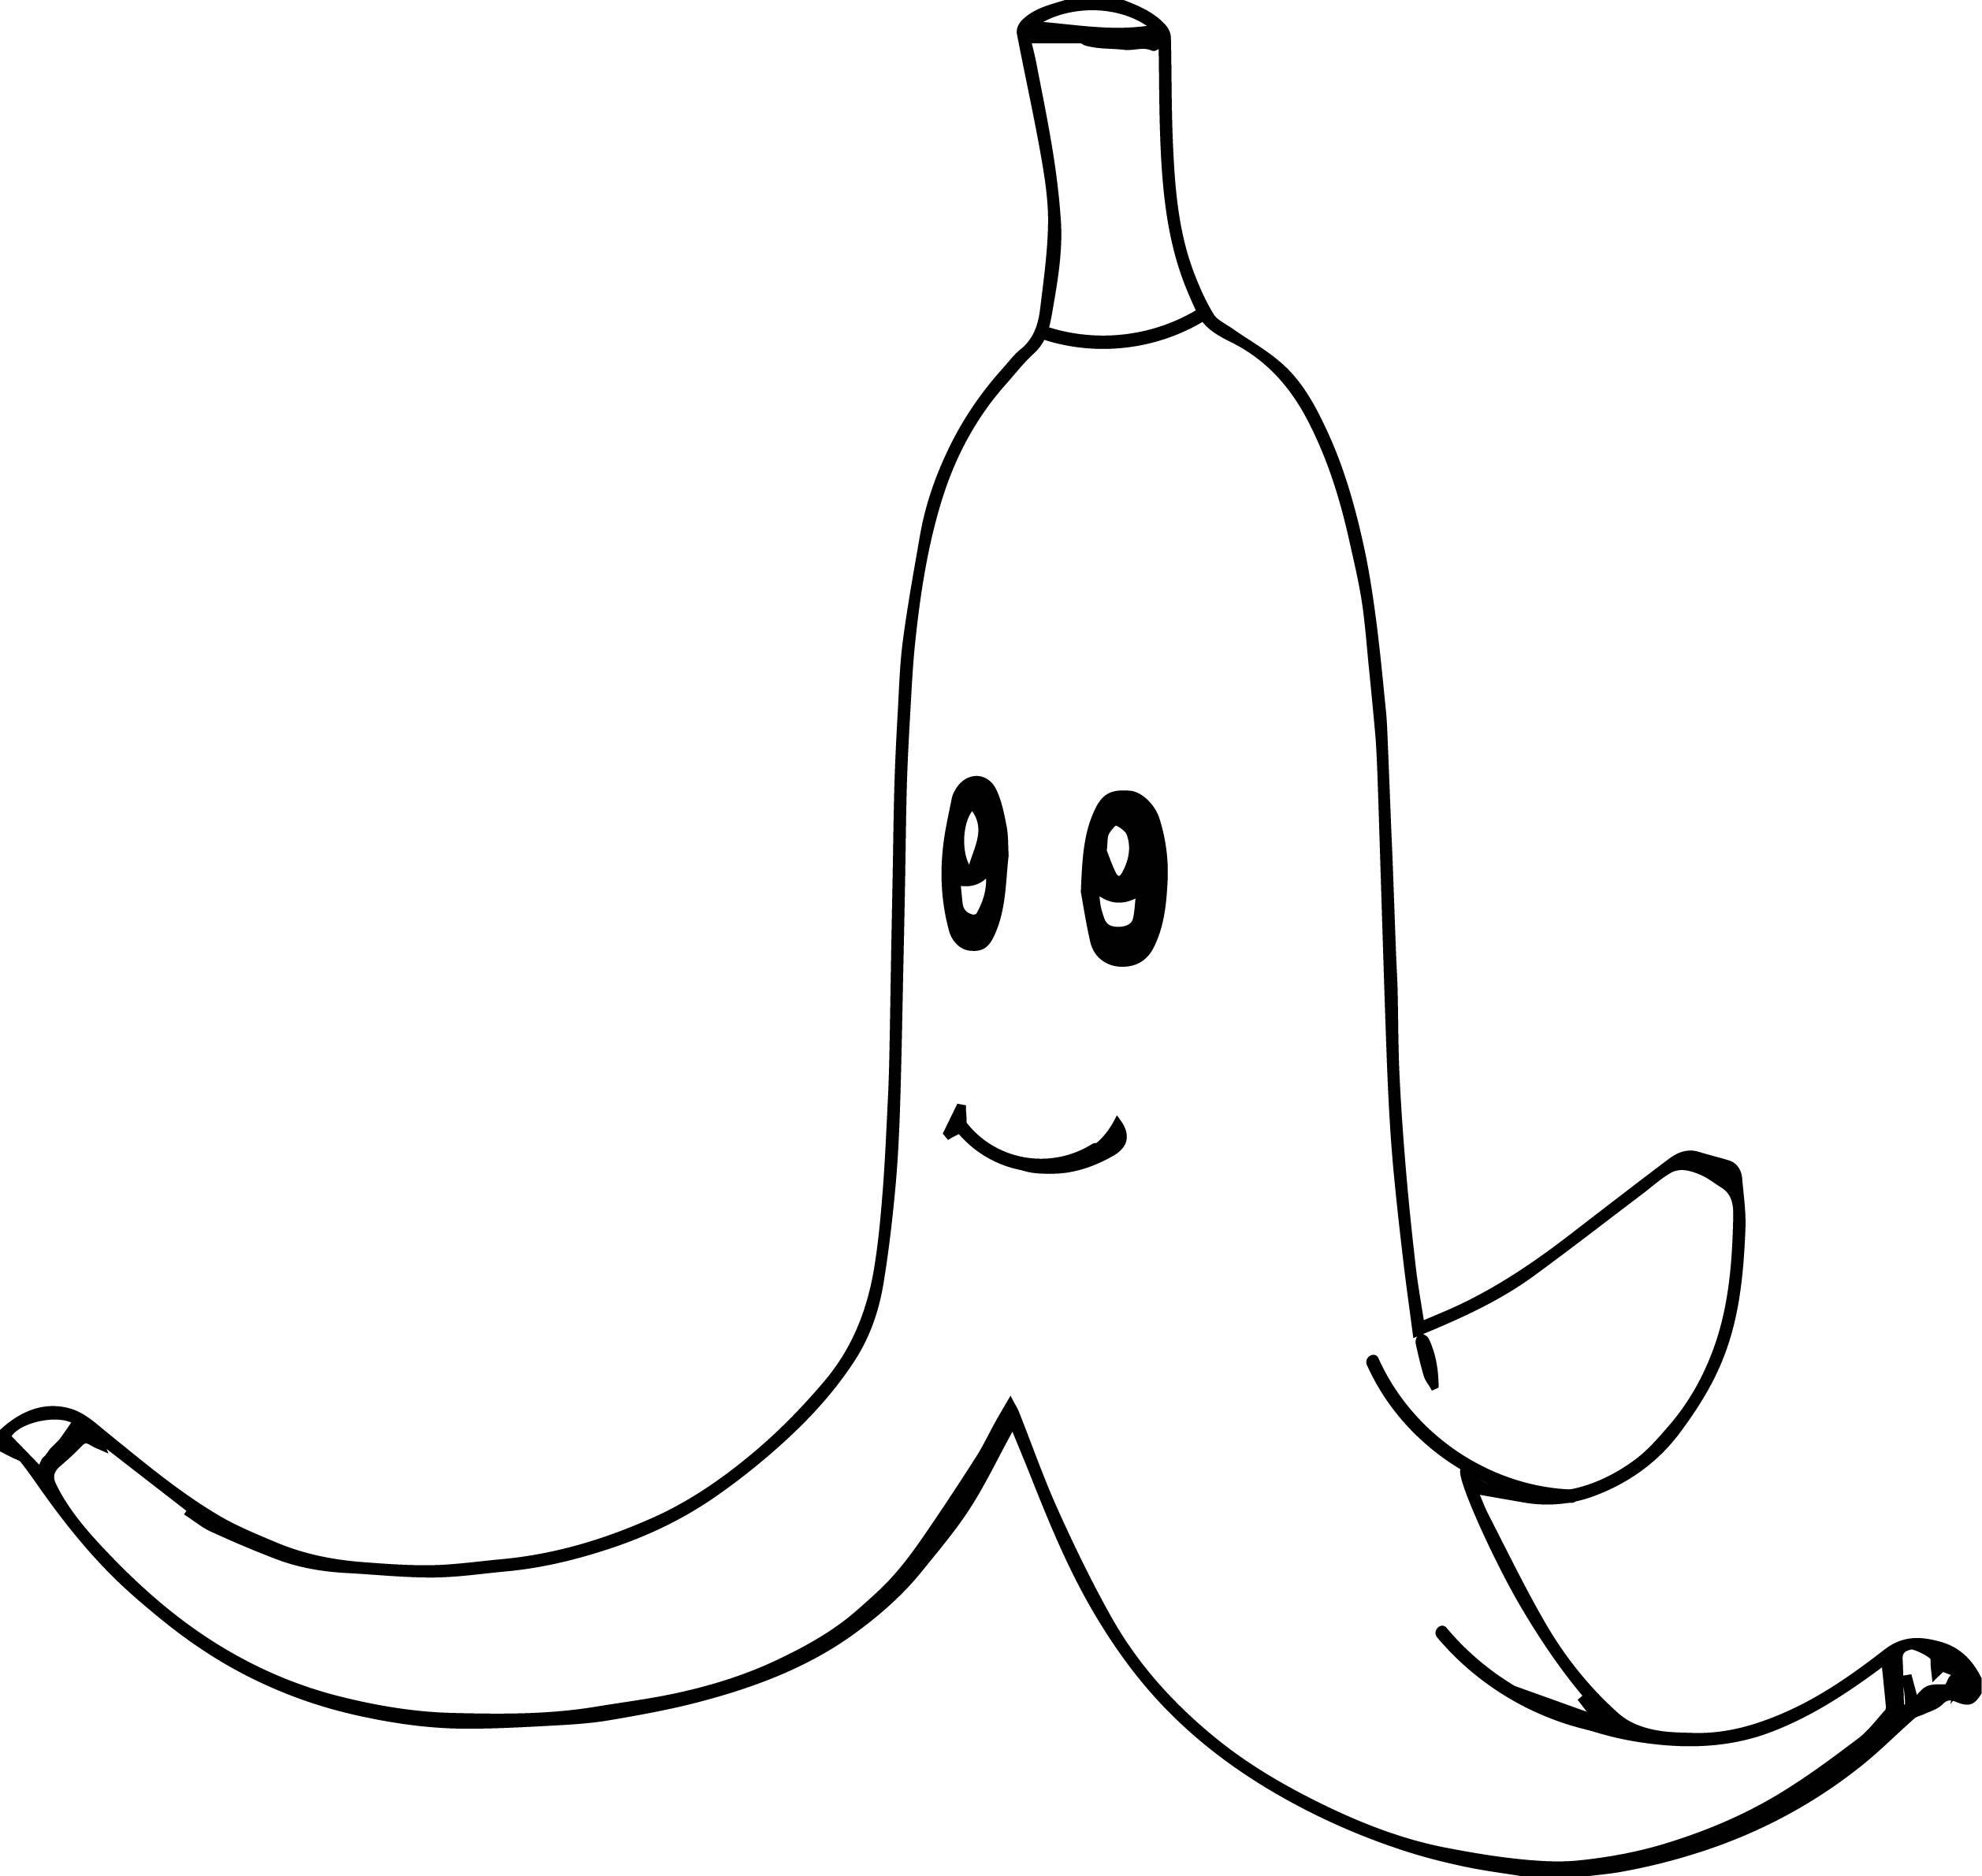 super mario bros banana coloring page - Mario Kart Coloring Pages